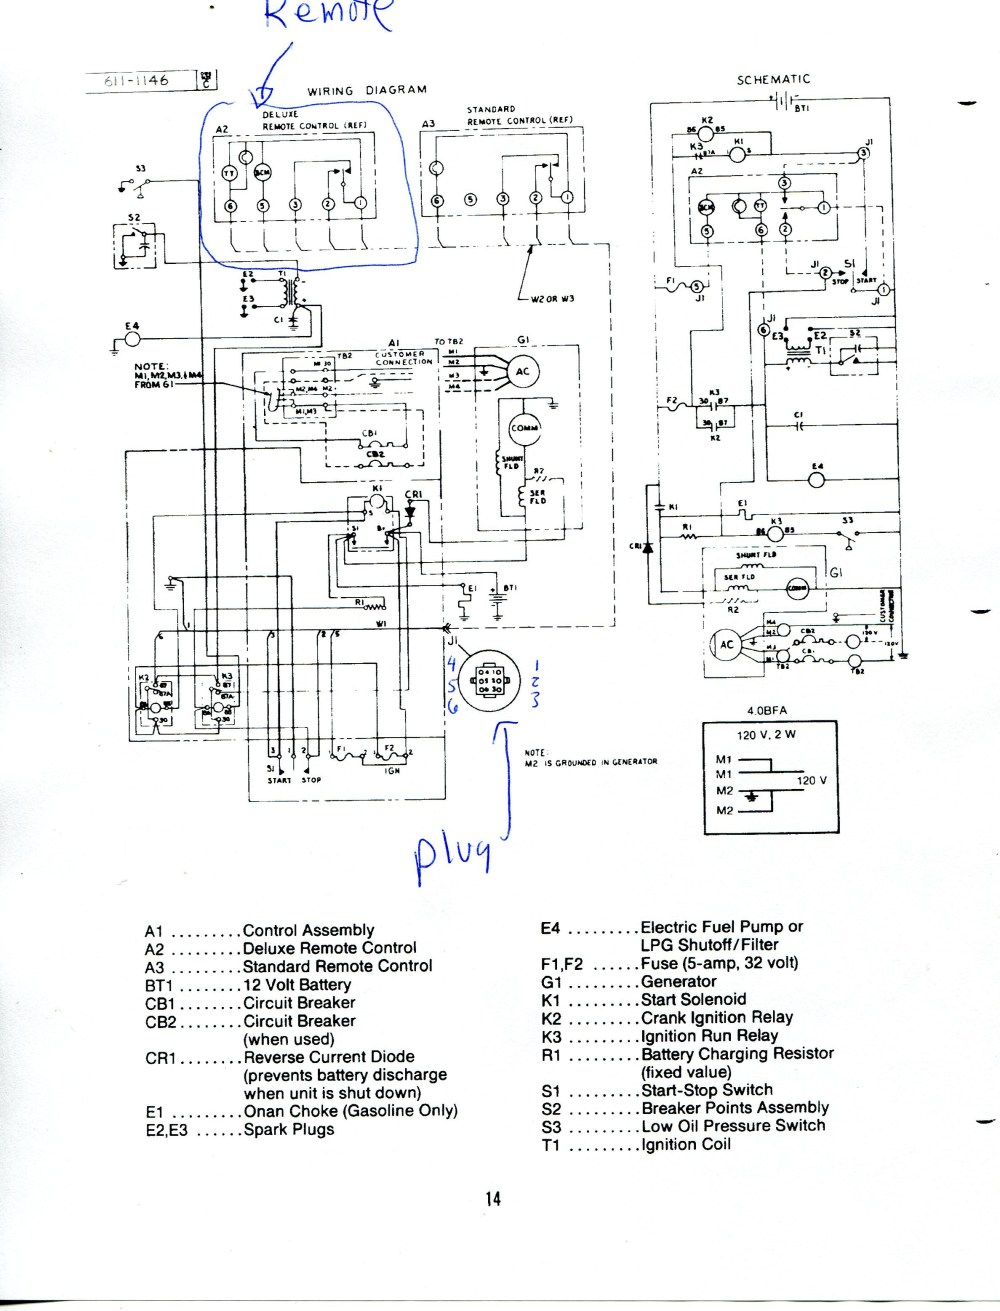 medium resolution of wiring diagram onan genset wiring diagram infowiring diagram for onan generator control panel wiring diagram inside